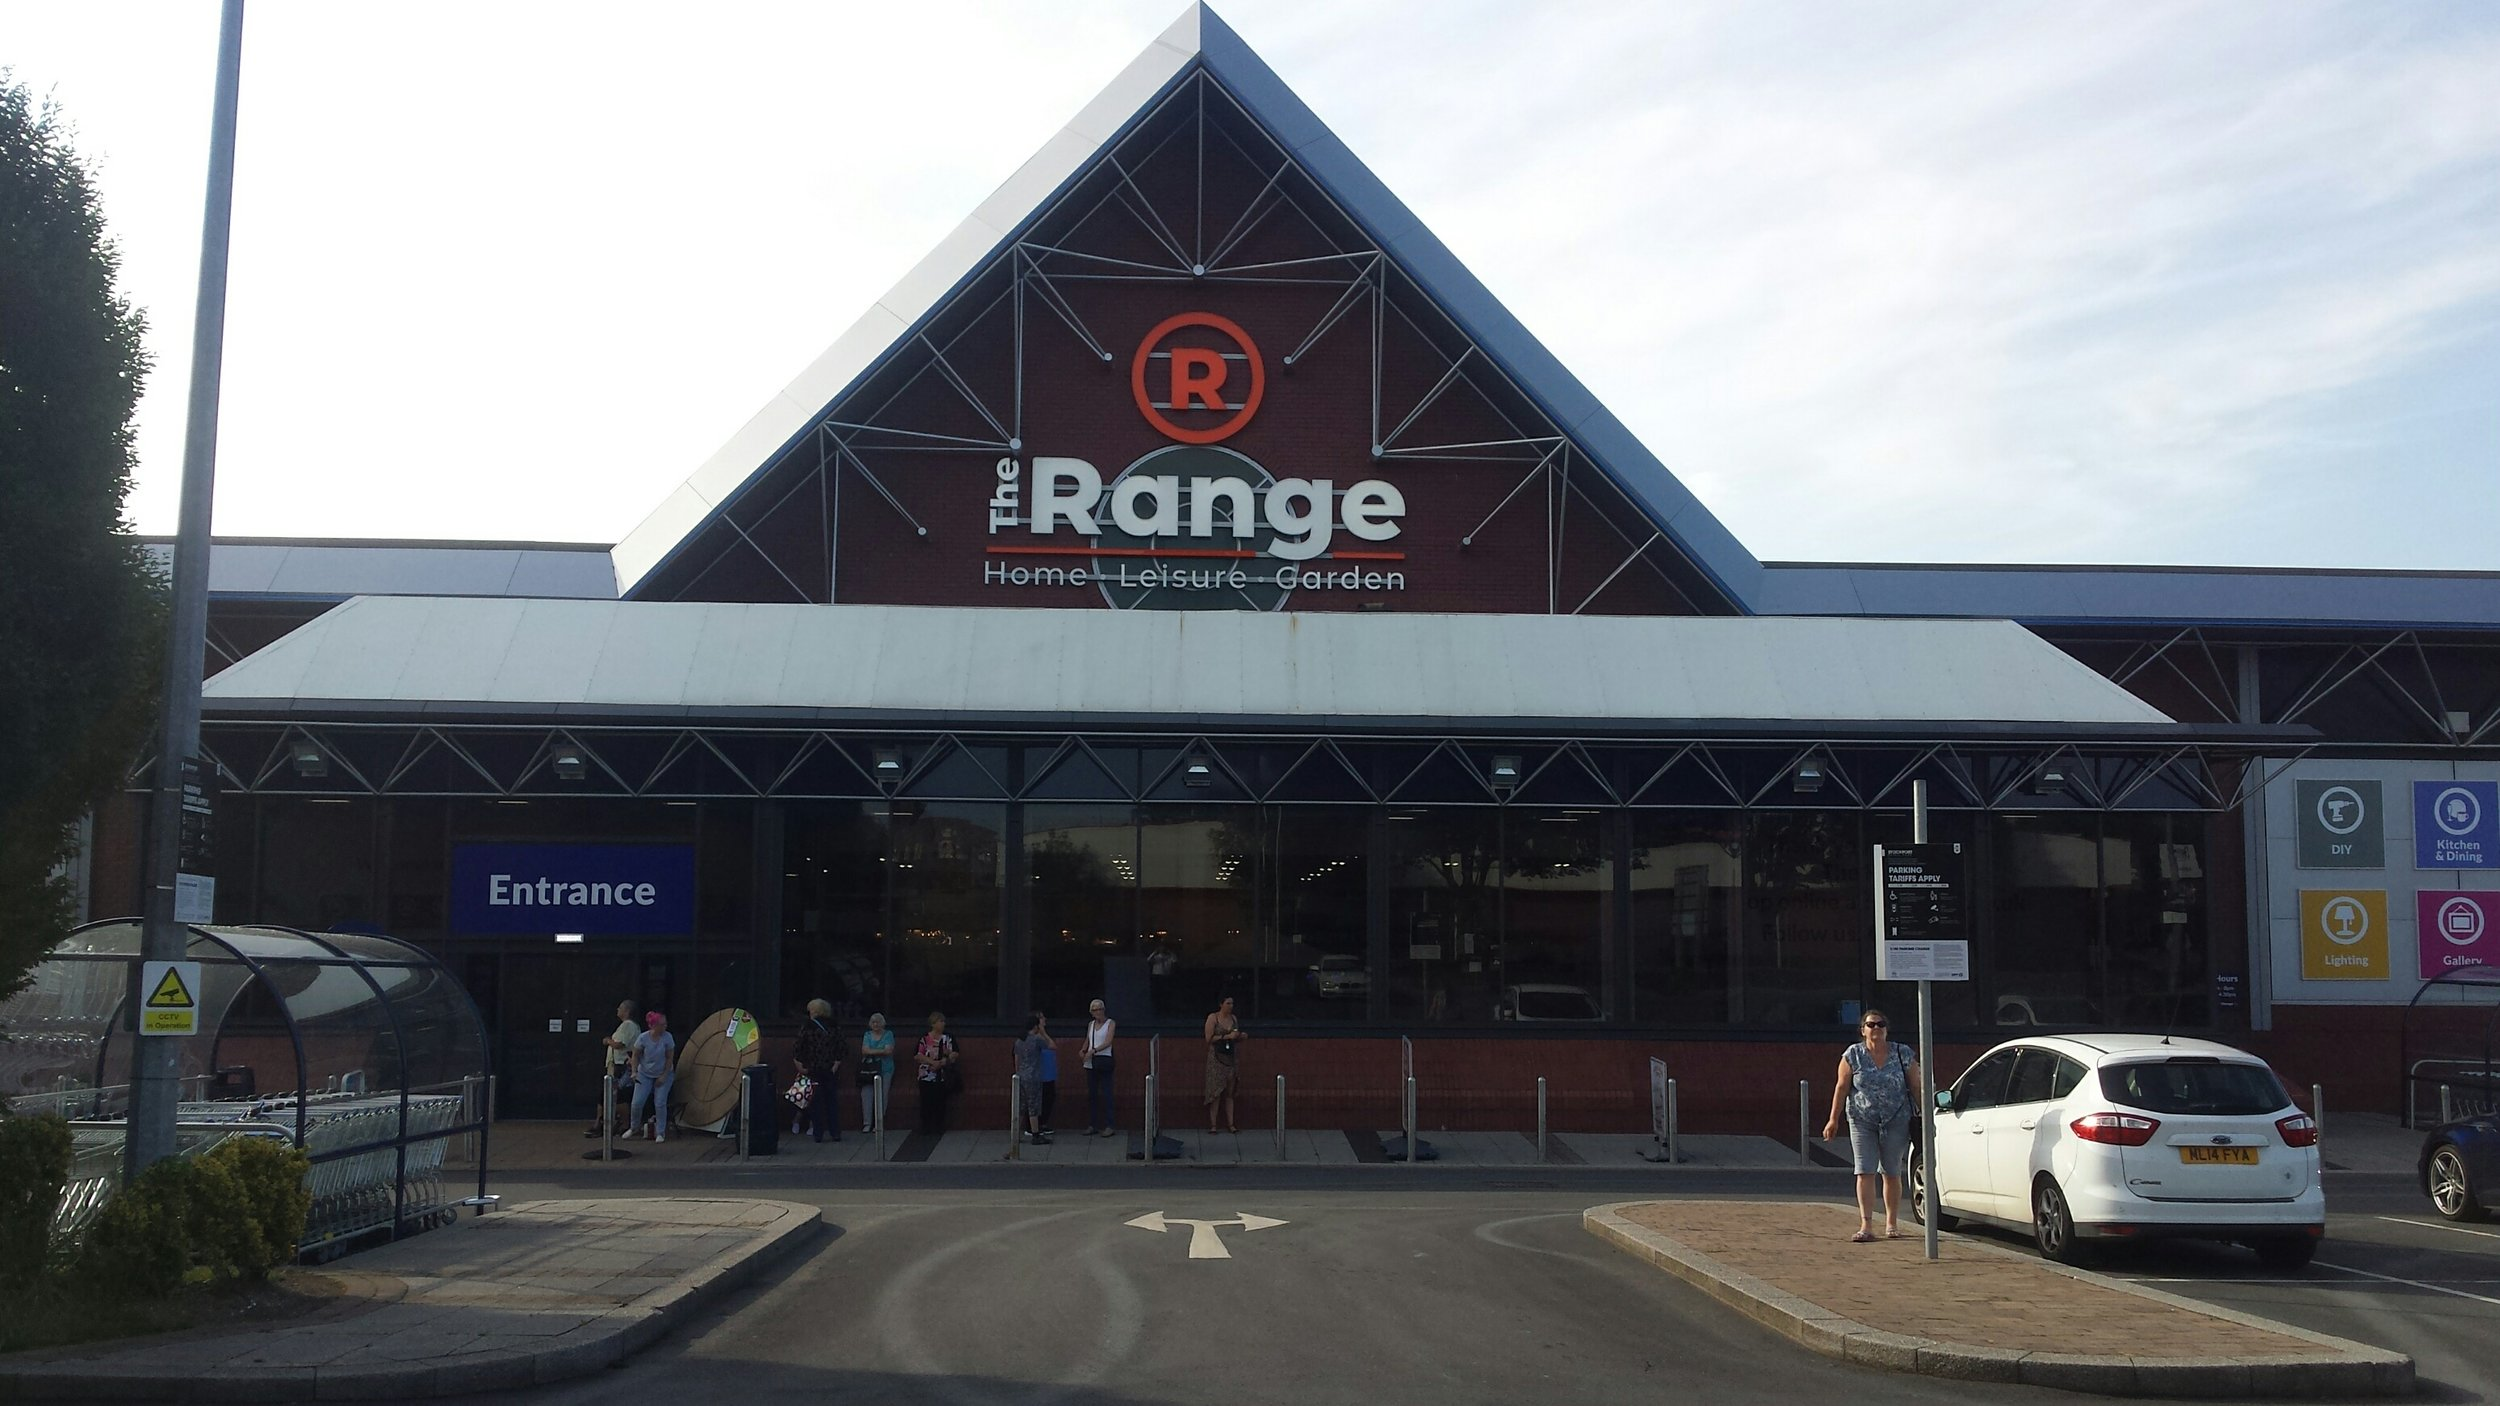 The Range at Stockport Retail Park